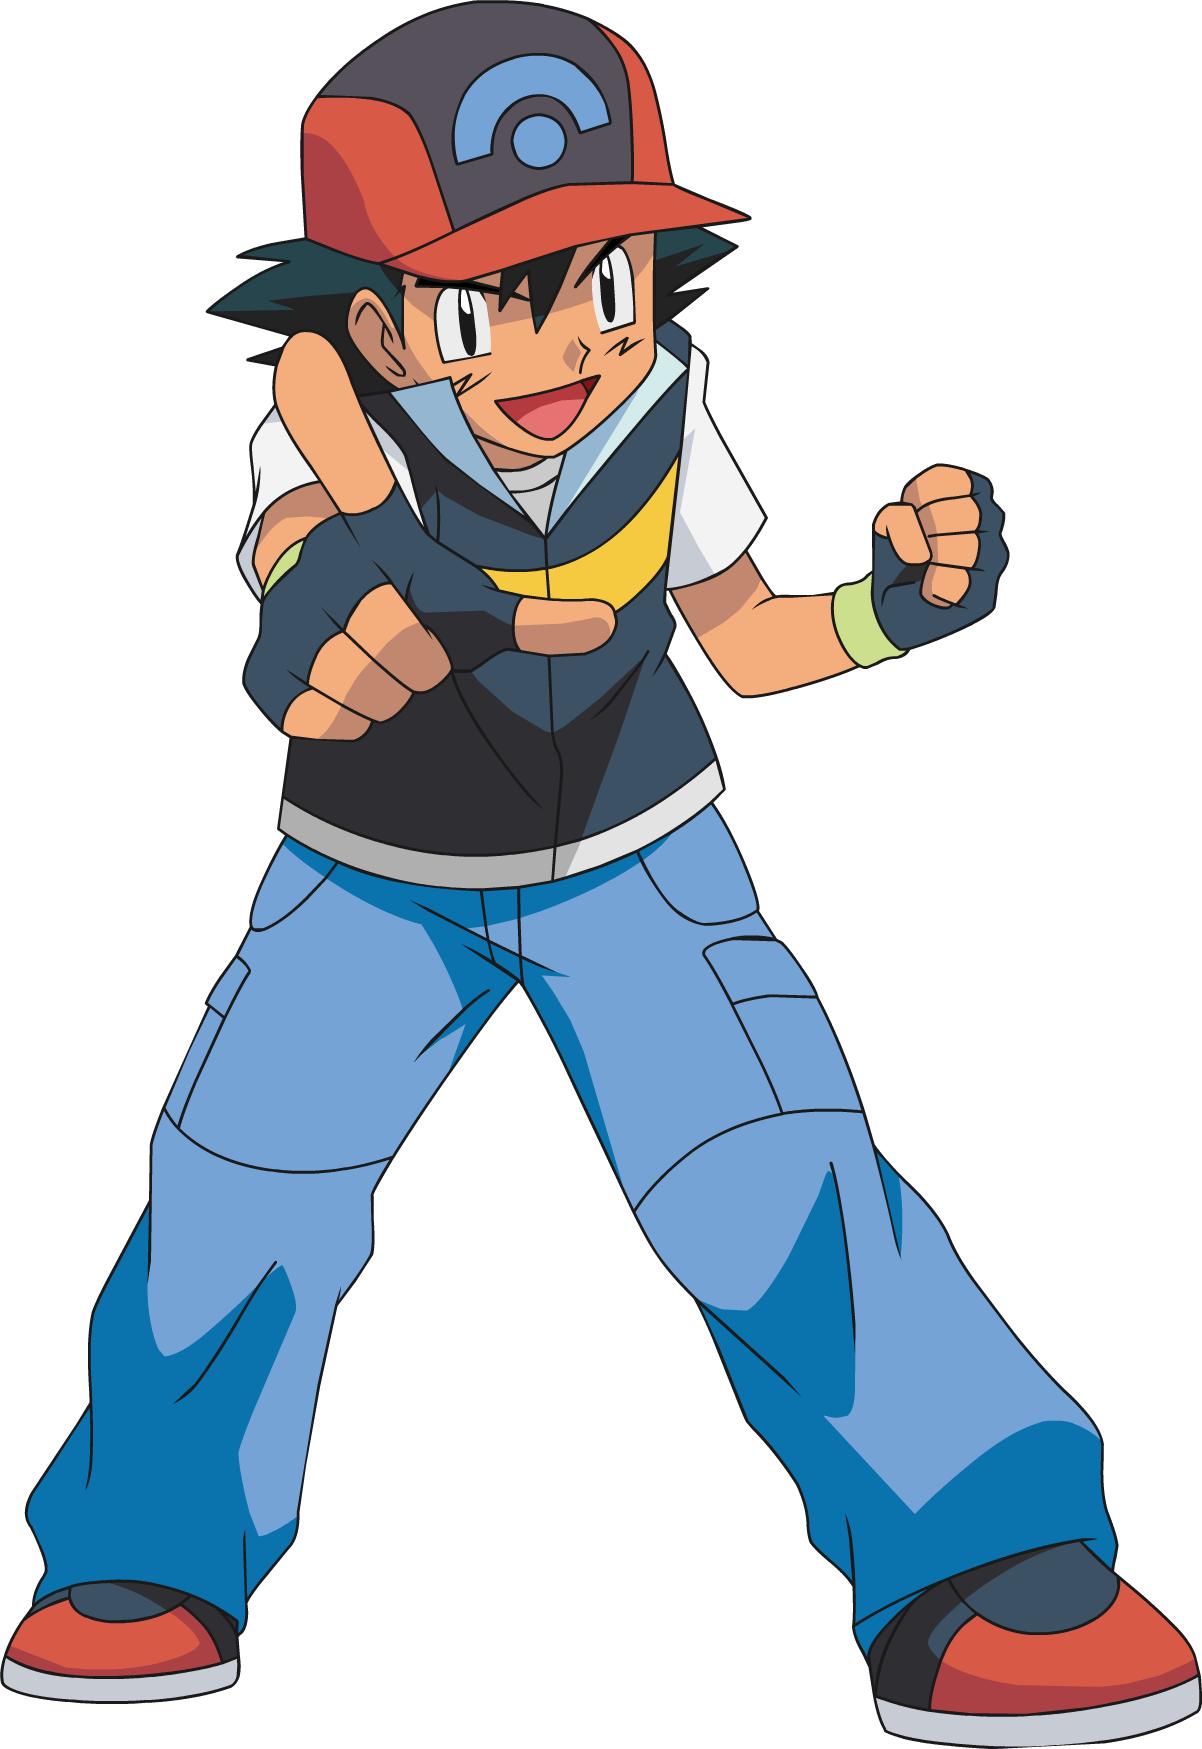 Download Pokemon Ash PNG Transparent Image For Designing Projects.